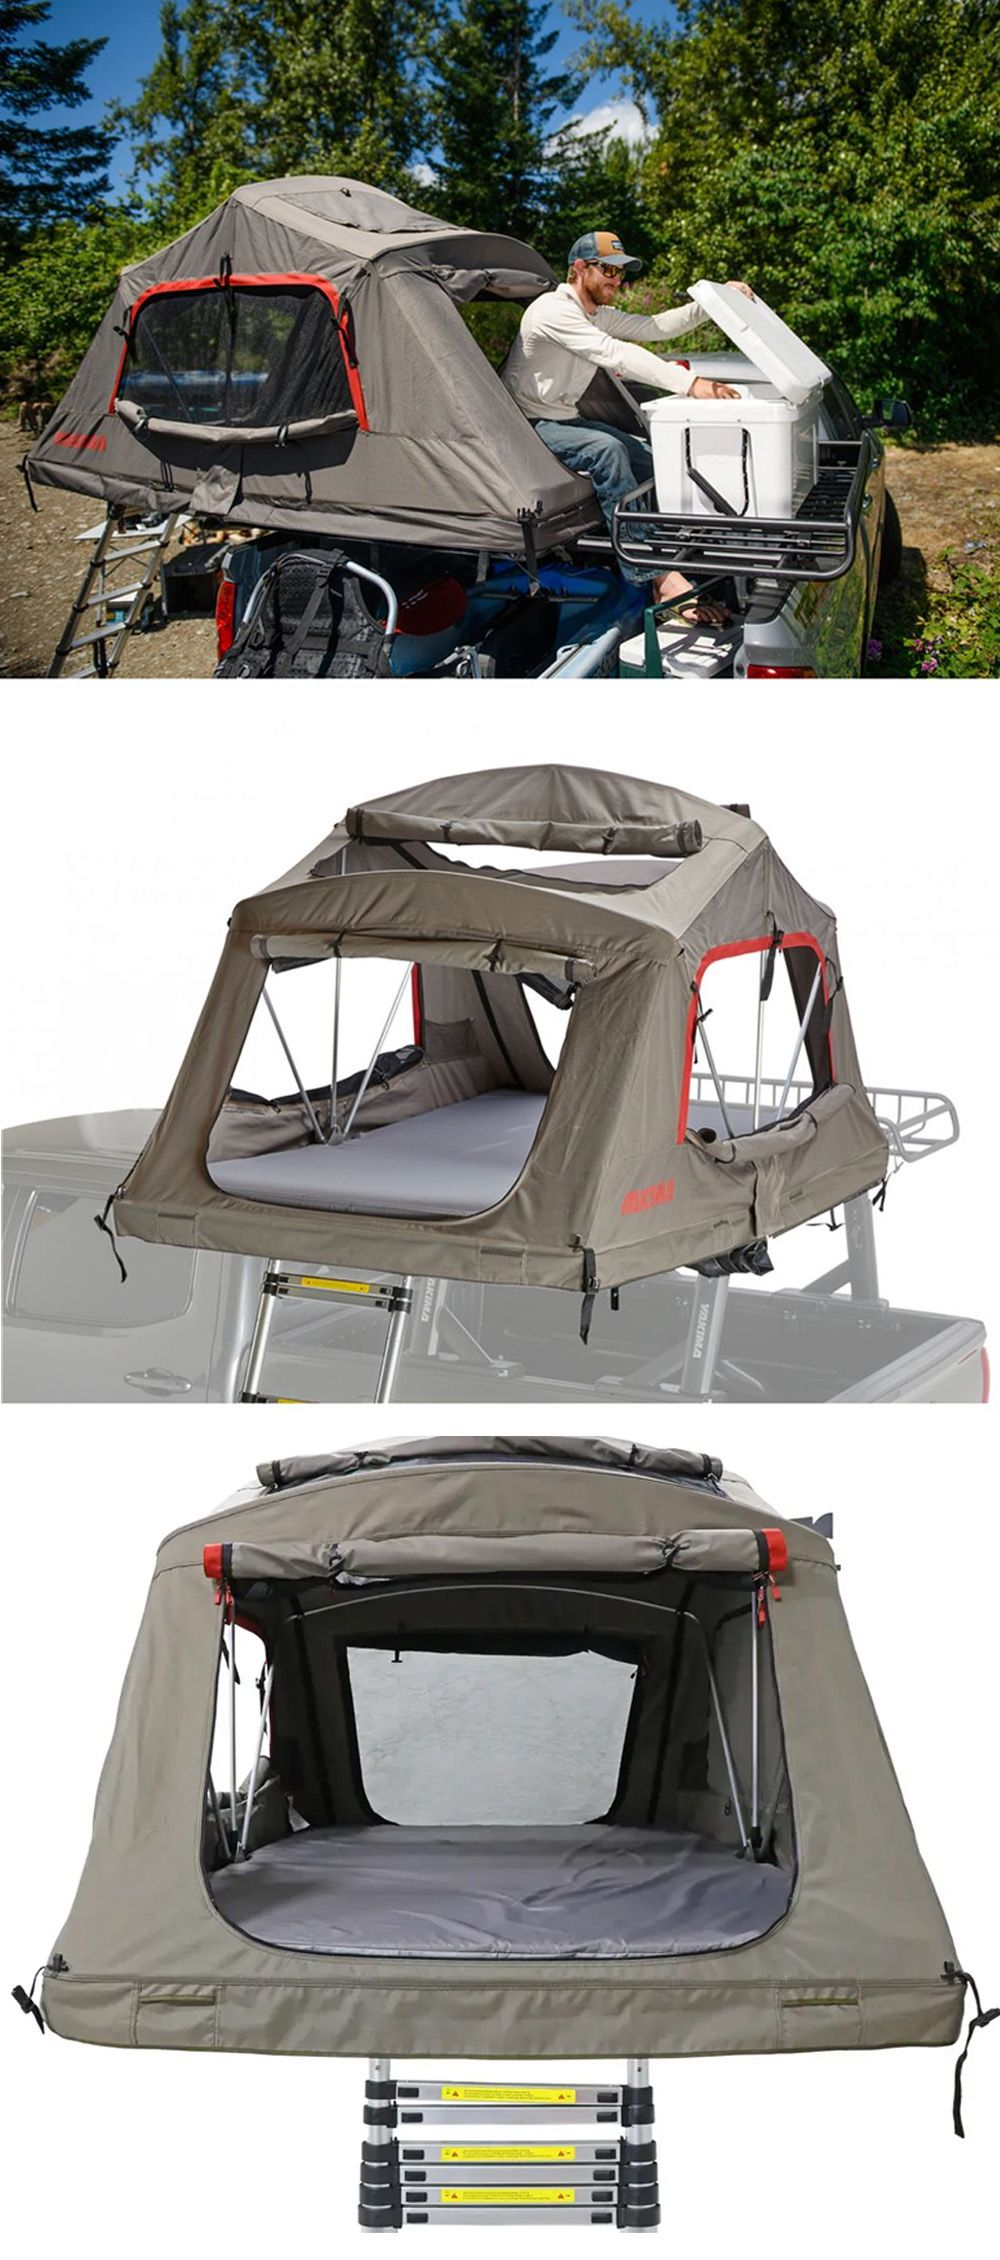 Yakima Skyrise Poler Tent For Roof Rack Crossbars 3 Person 600